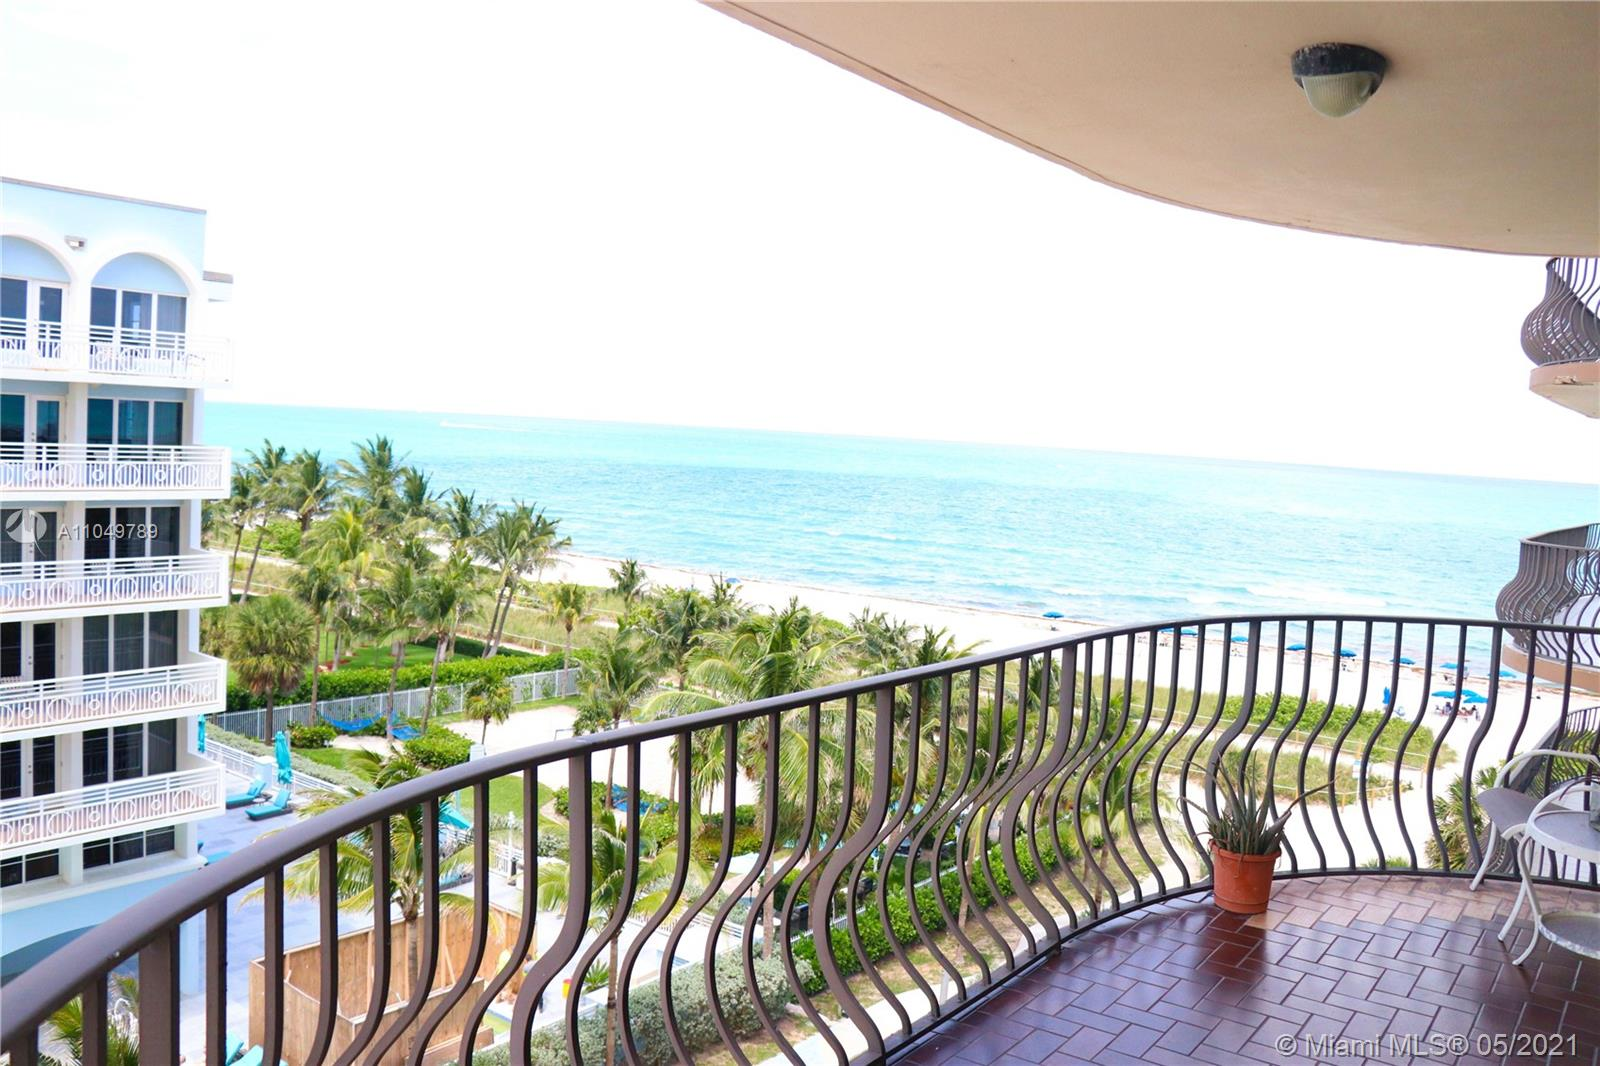 Champlain Towers South #602 - 8777 Collins Ave #602, Surfside, FL 33154